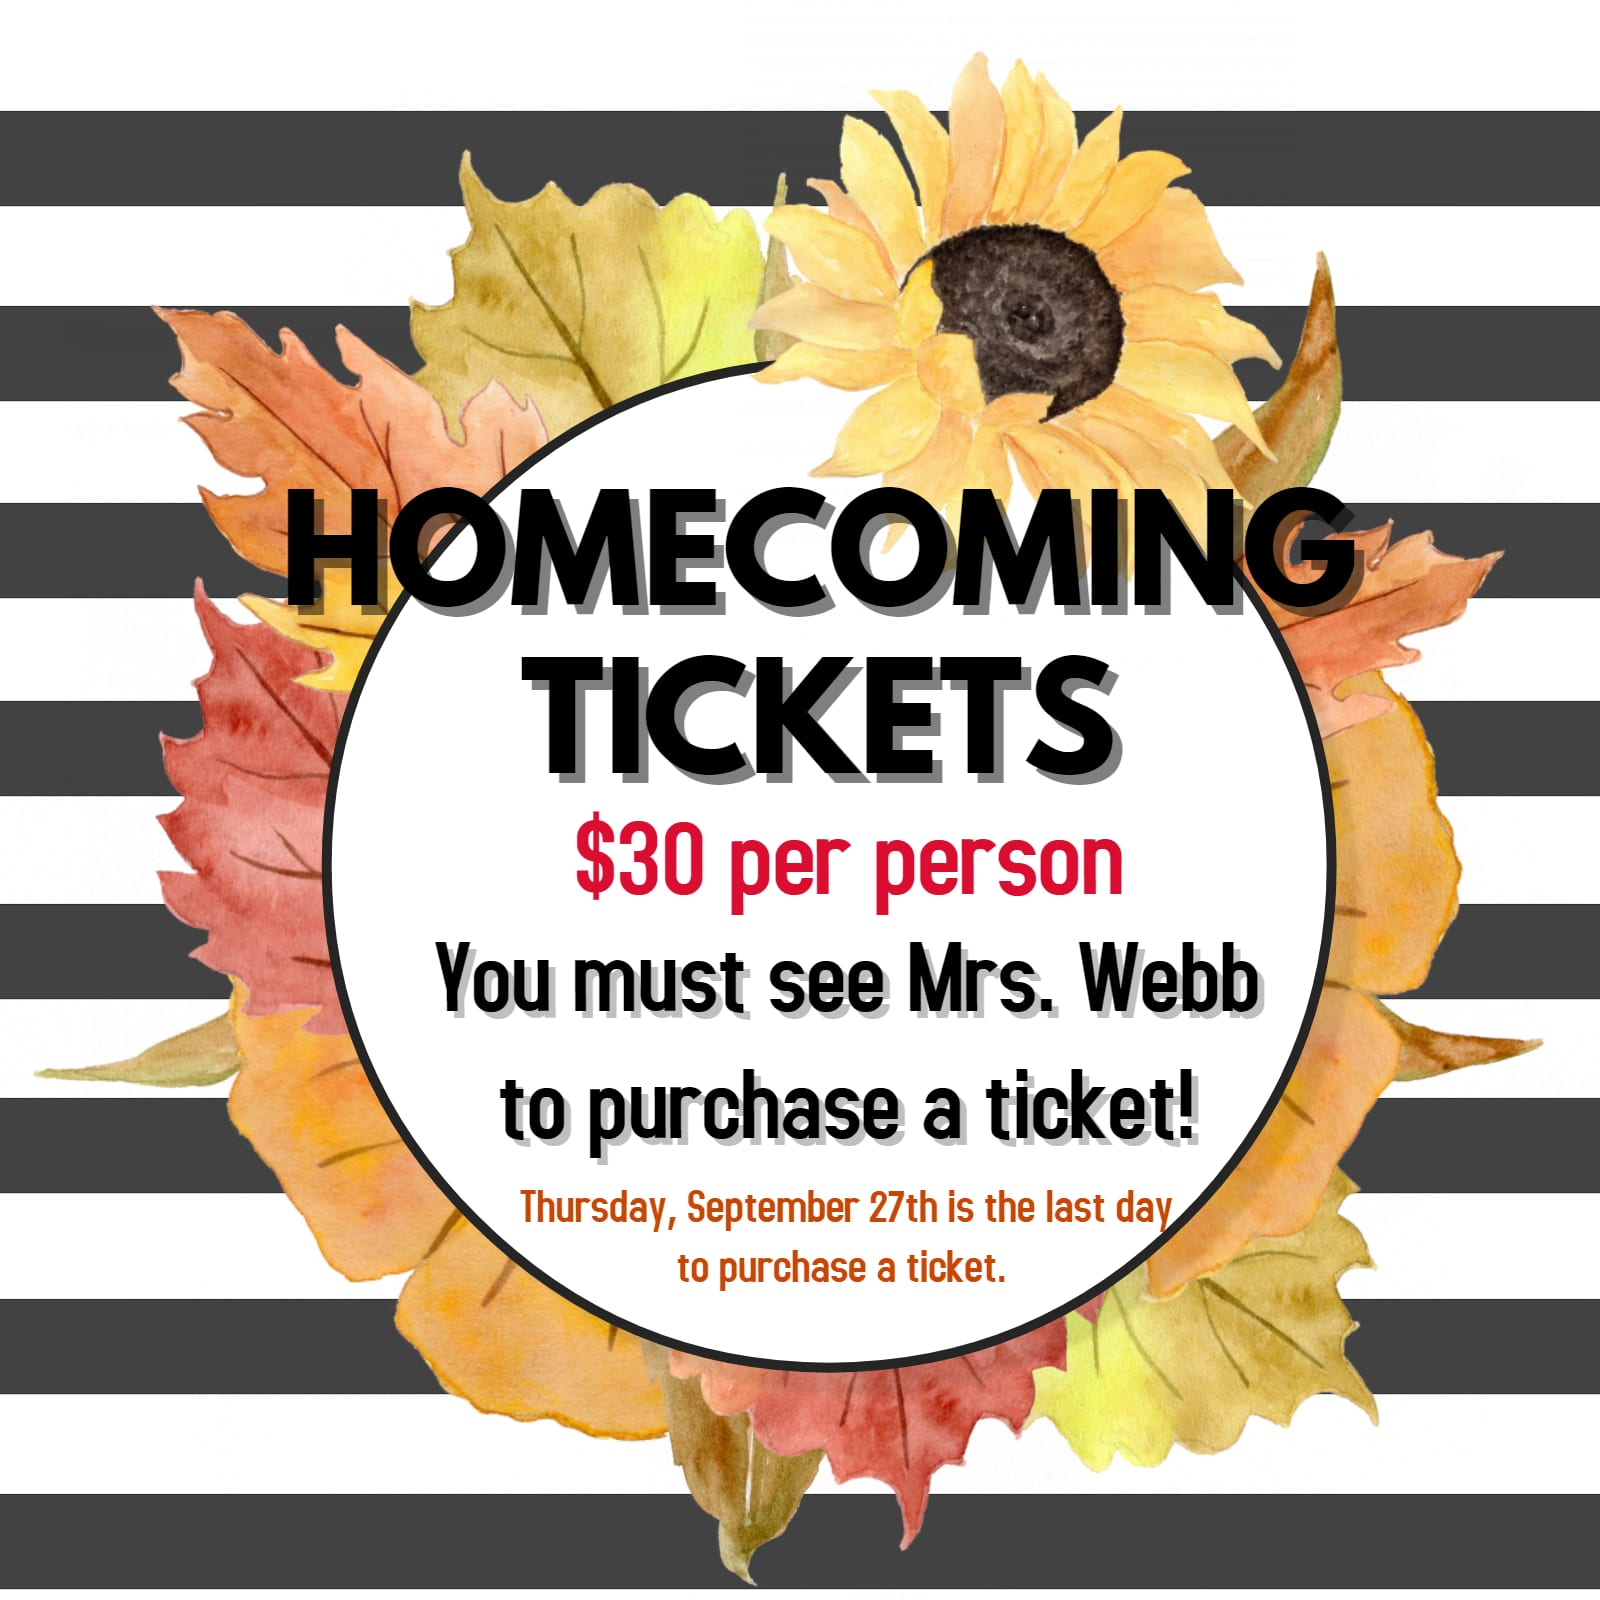 Homecoming tickets on sale now st joseph central catholic high our 2018 homecoming dance is saturday september 29th from 8 1030pm at guyan golf country club tickets are on sale now in mrs webbs room for 30 per izmirmasajfo